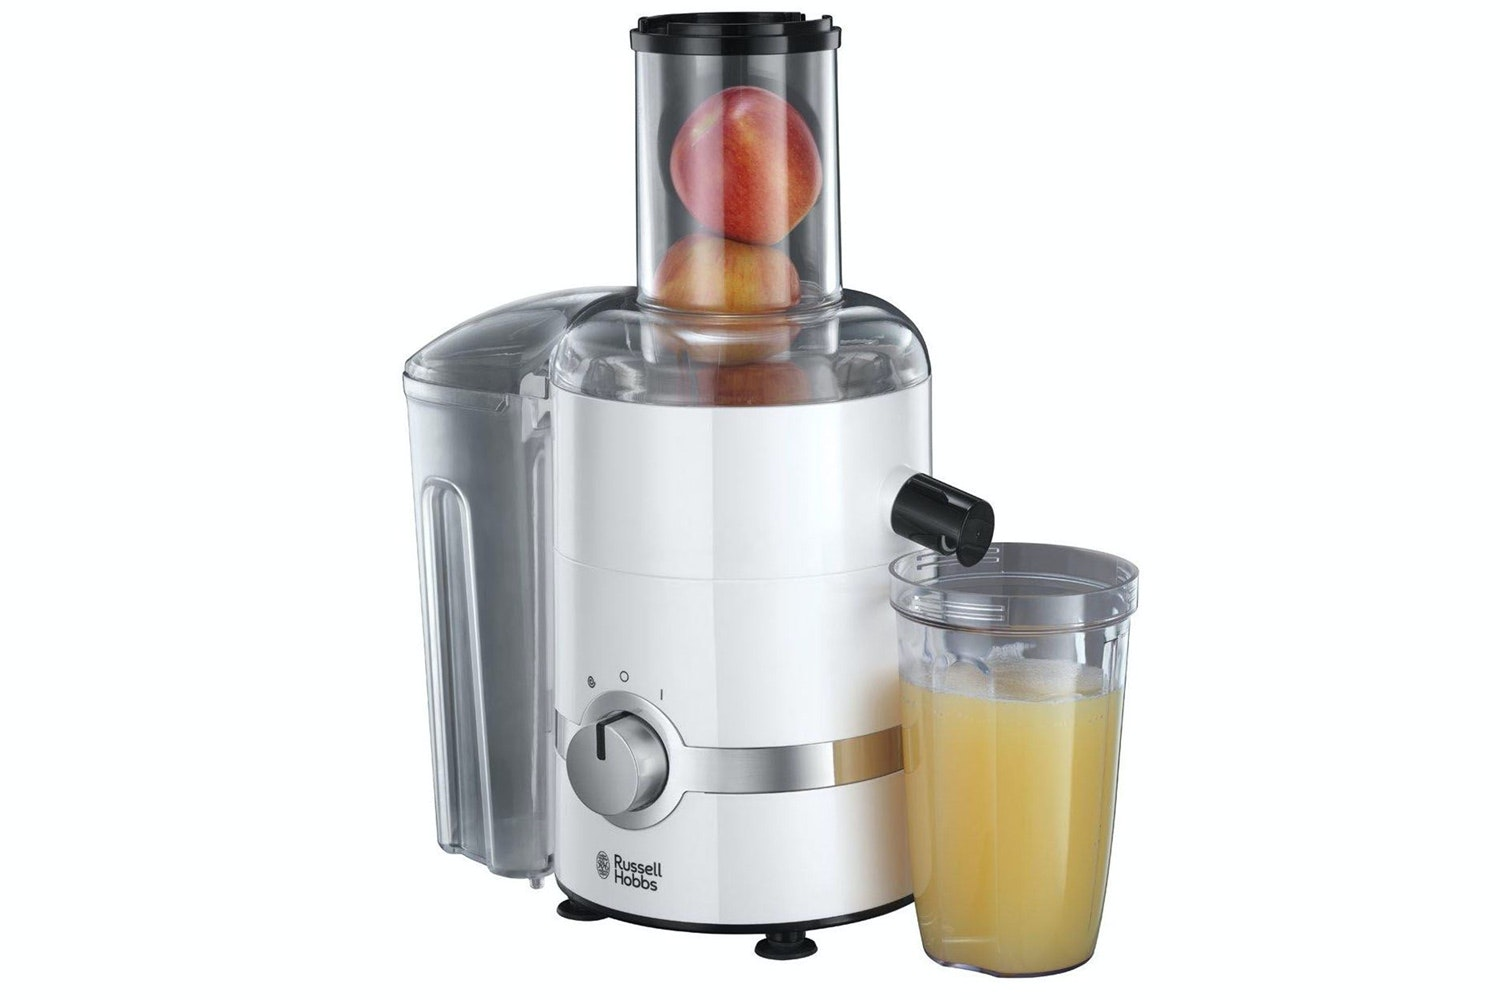 Russell Hobbs Ultimate Centrifugal Juicer | 22700